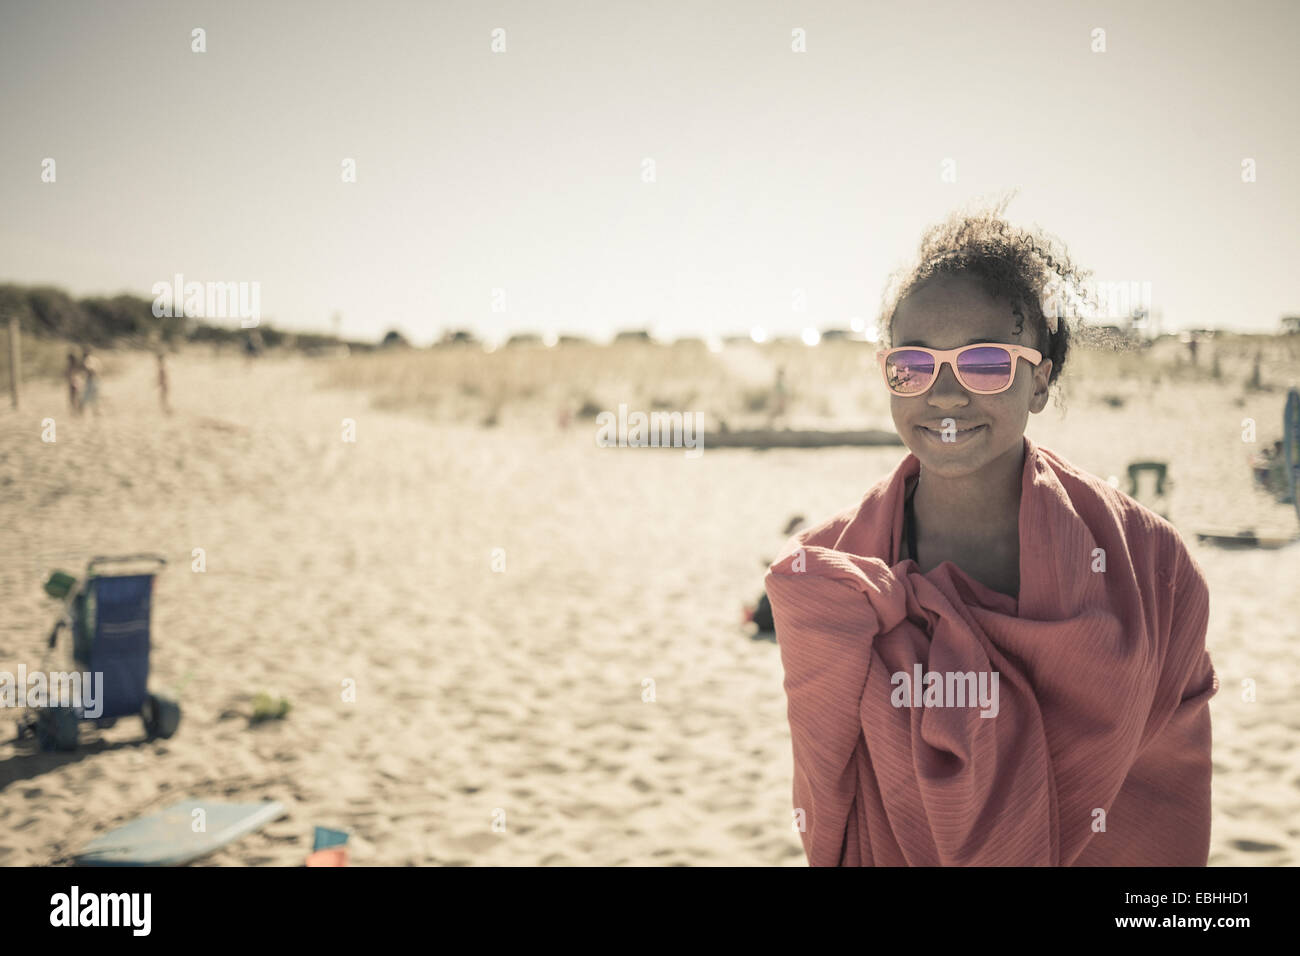 Girl wrapped in towel on beach, Truro, Massachusetts, Cape Cod, USA Photo Stock